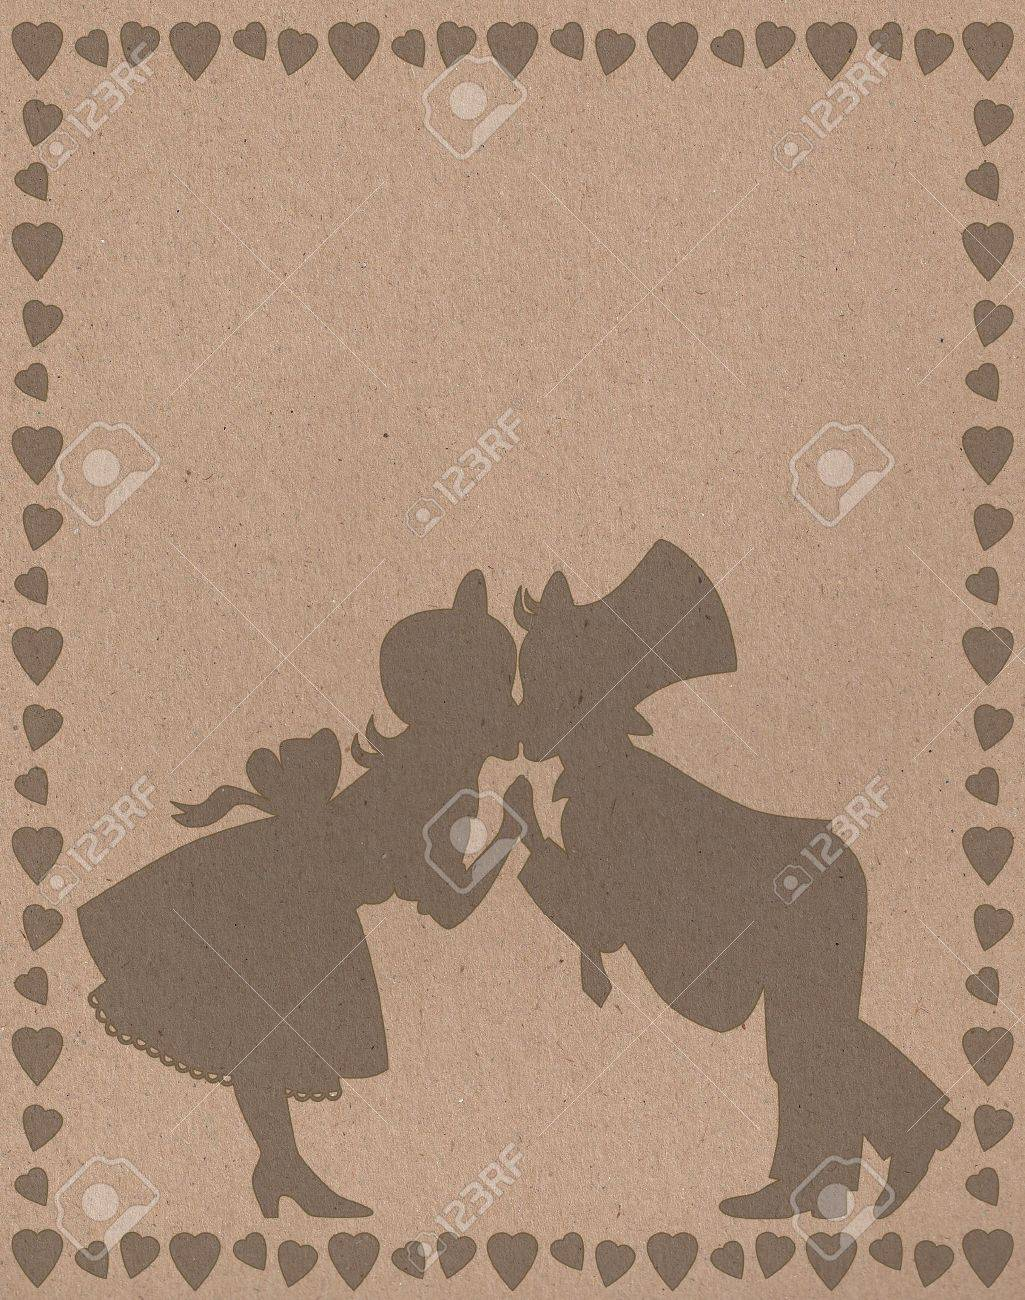 dark silhouette of kissing a boy and a girl in a frame of hearts Stock Photo - 17088482